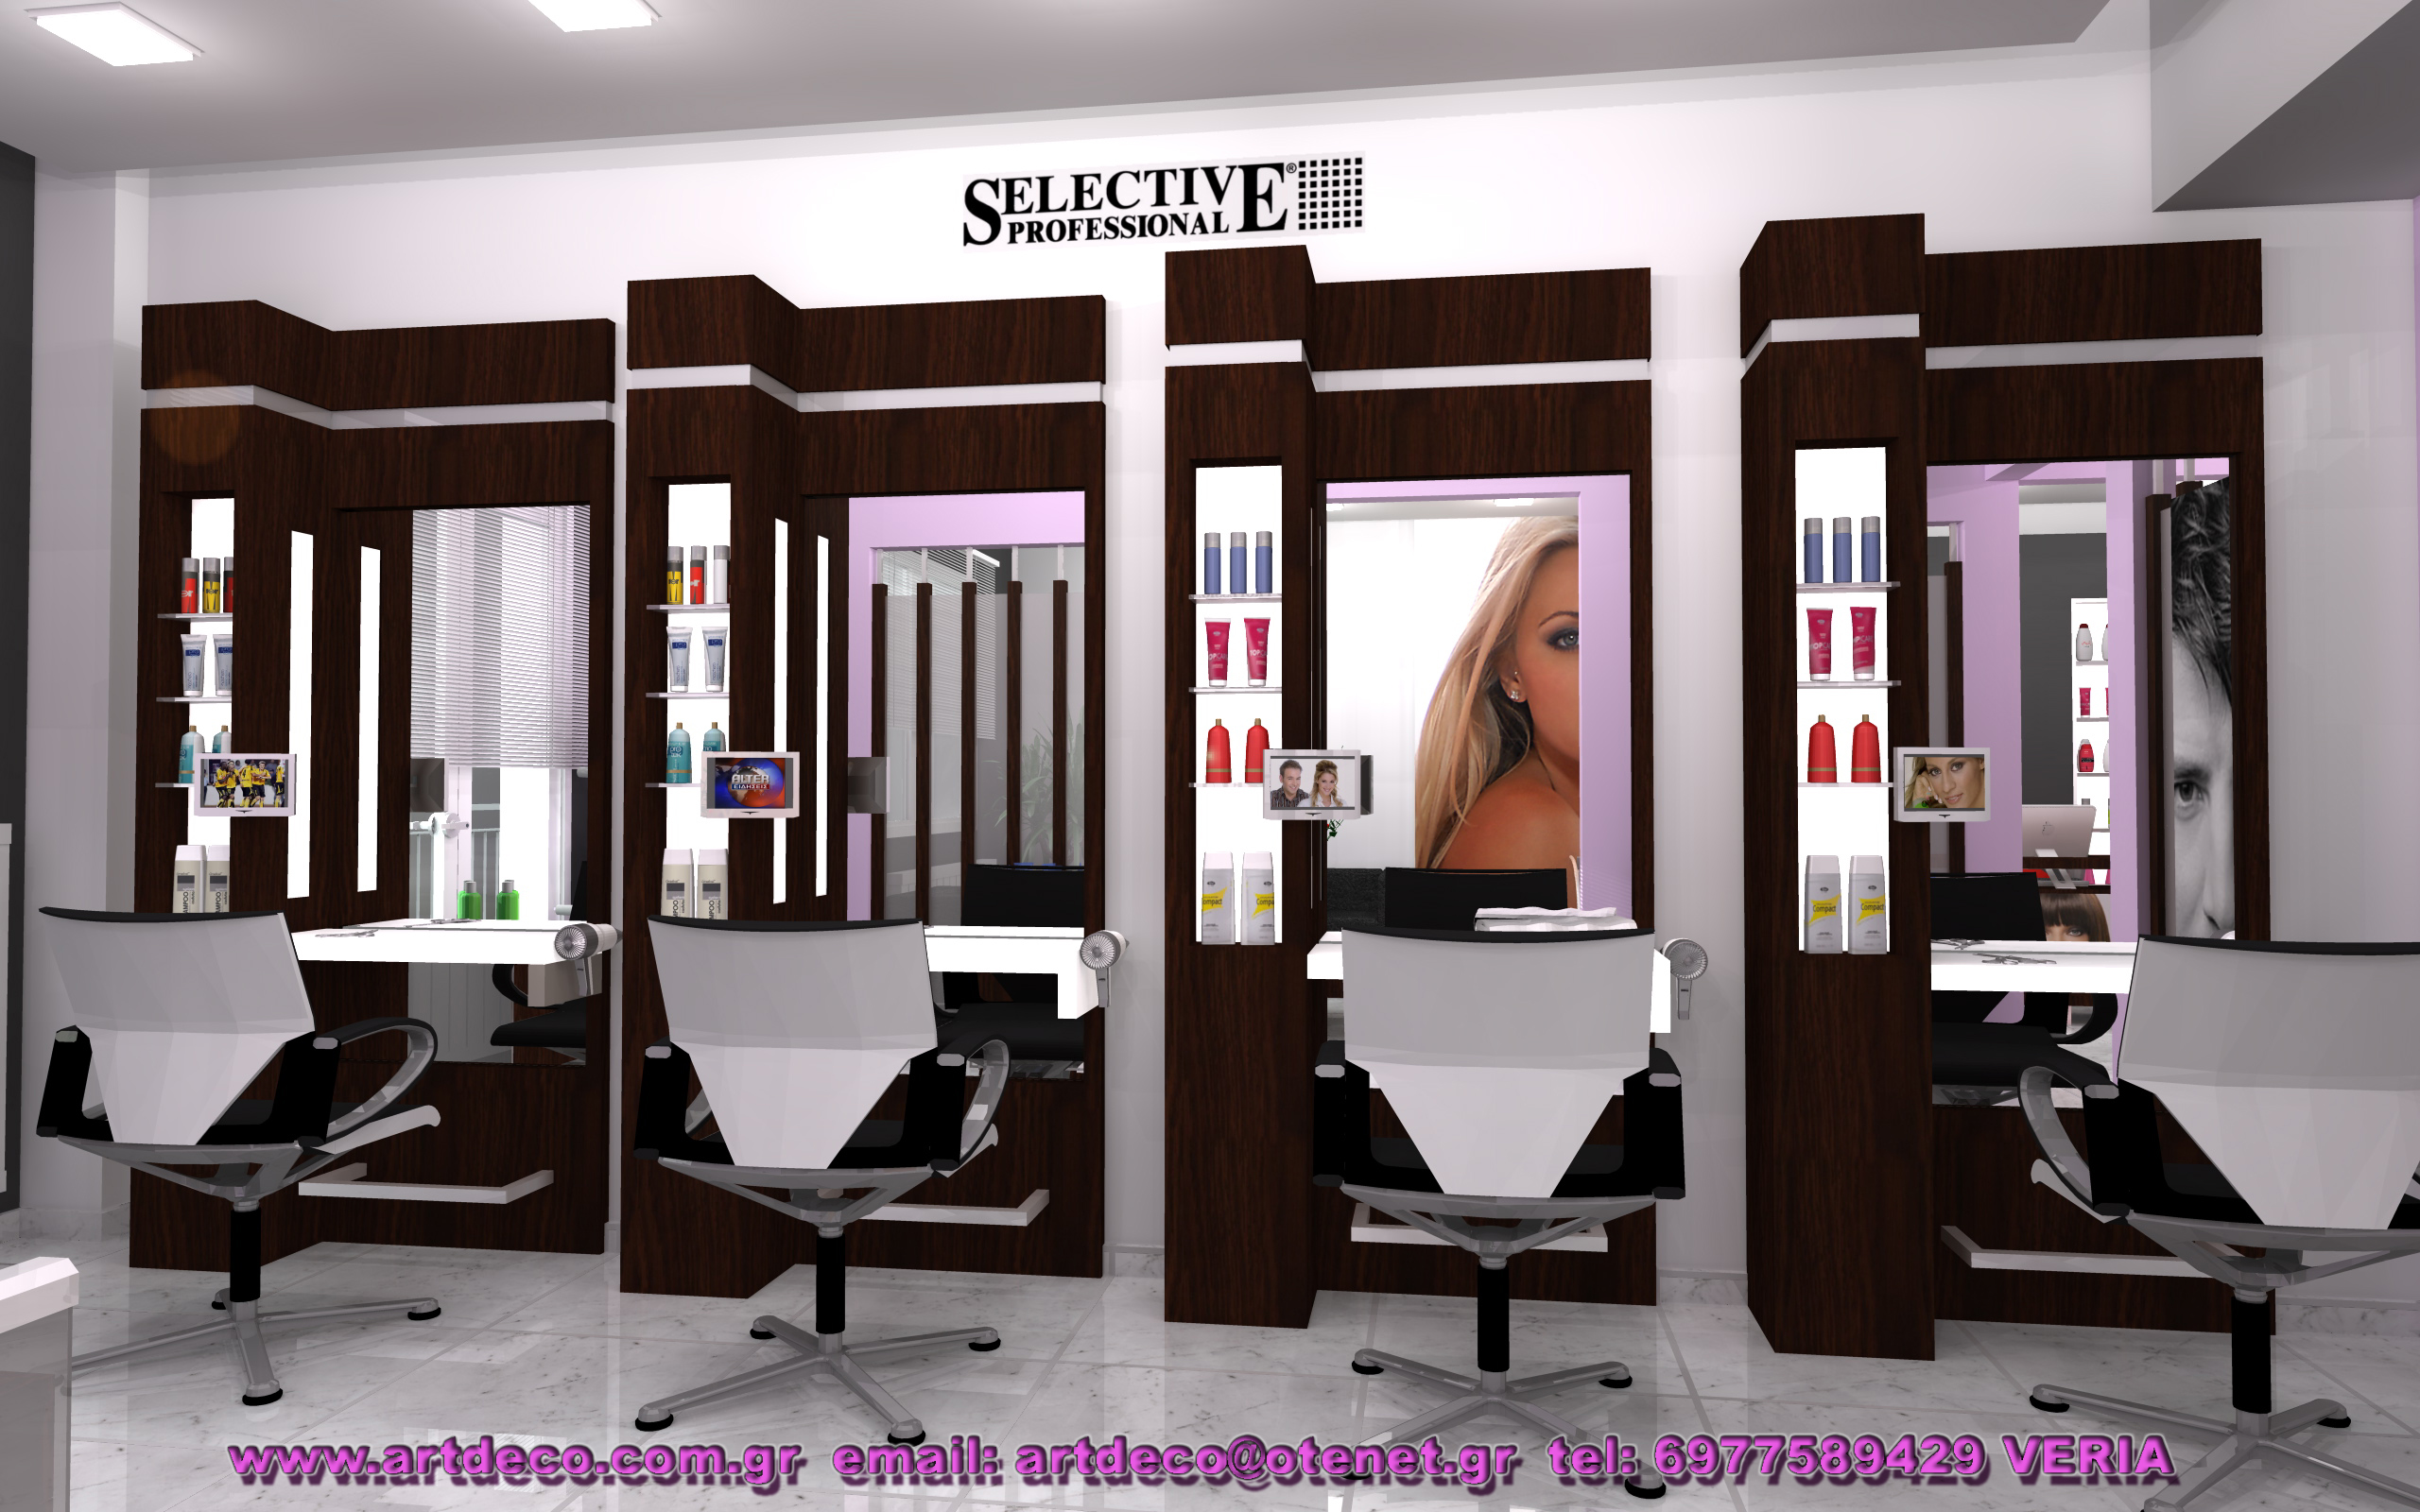 Hair dresser s for Salon art deco